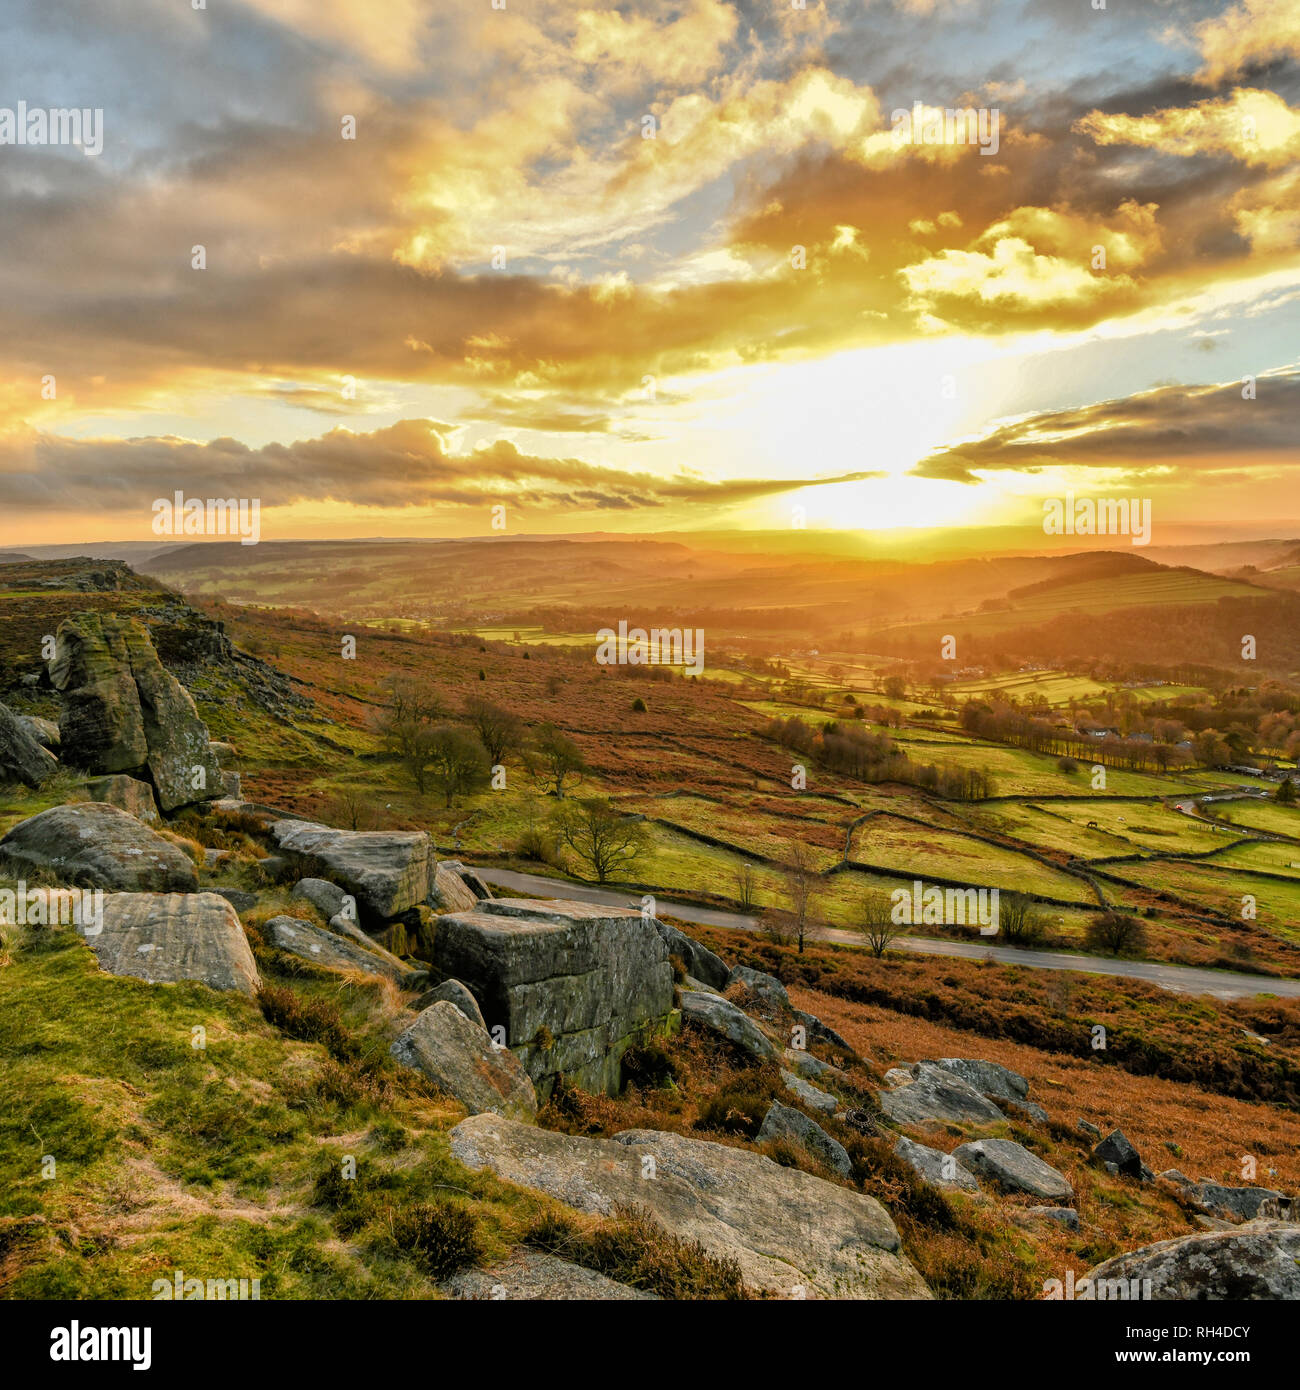 The fantastic view from Curbar Edge in the Peak District National Park - Stock Image